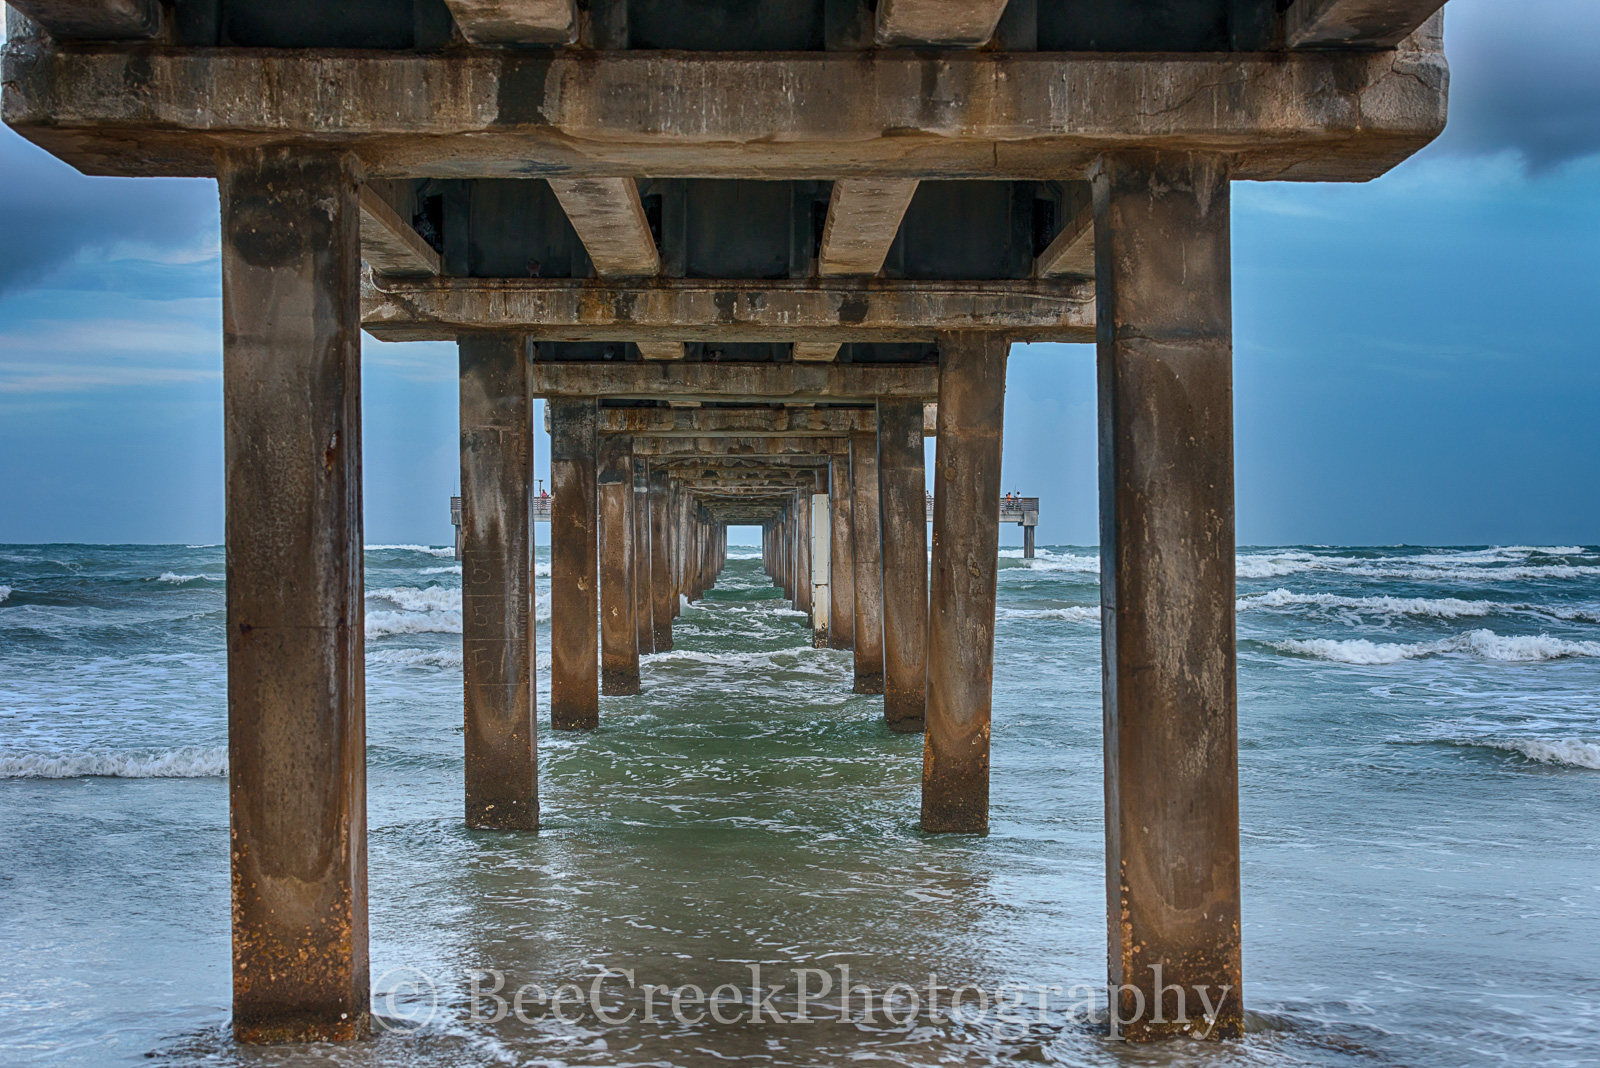 Port A, Port A Fishing Pier, Port Aransas, Texas Coast, beach, fishing pier, image of fishing pier, image of texas beach, images oAf Port A, images of texas coast, photos of Port A, photos of fishing,, photo